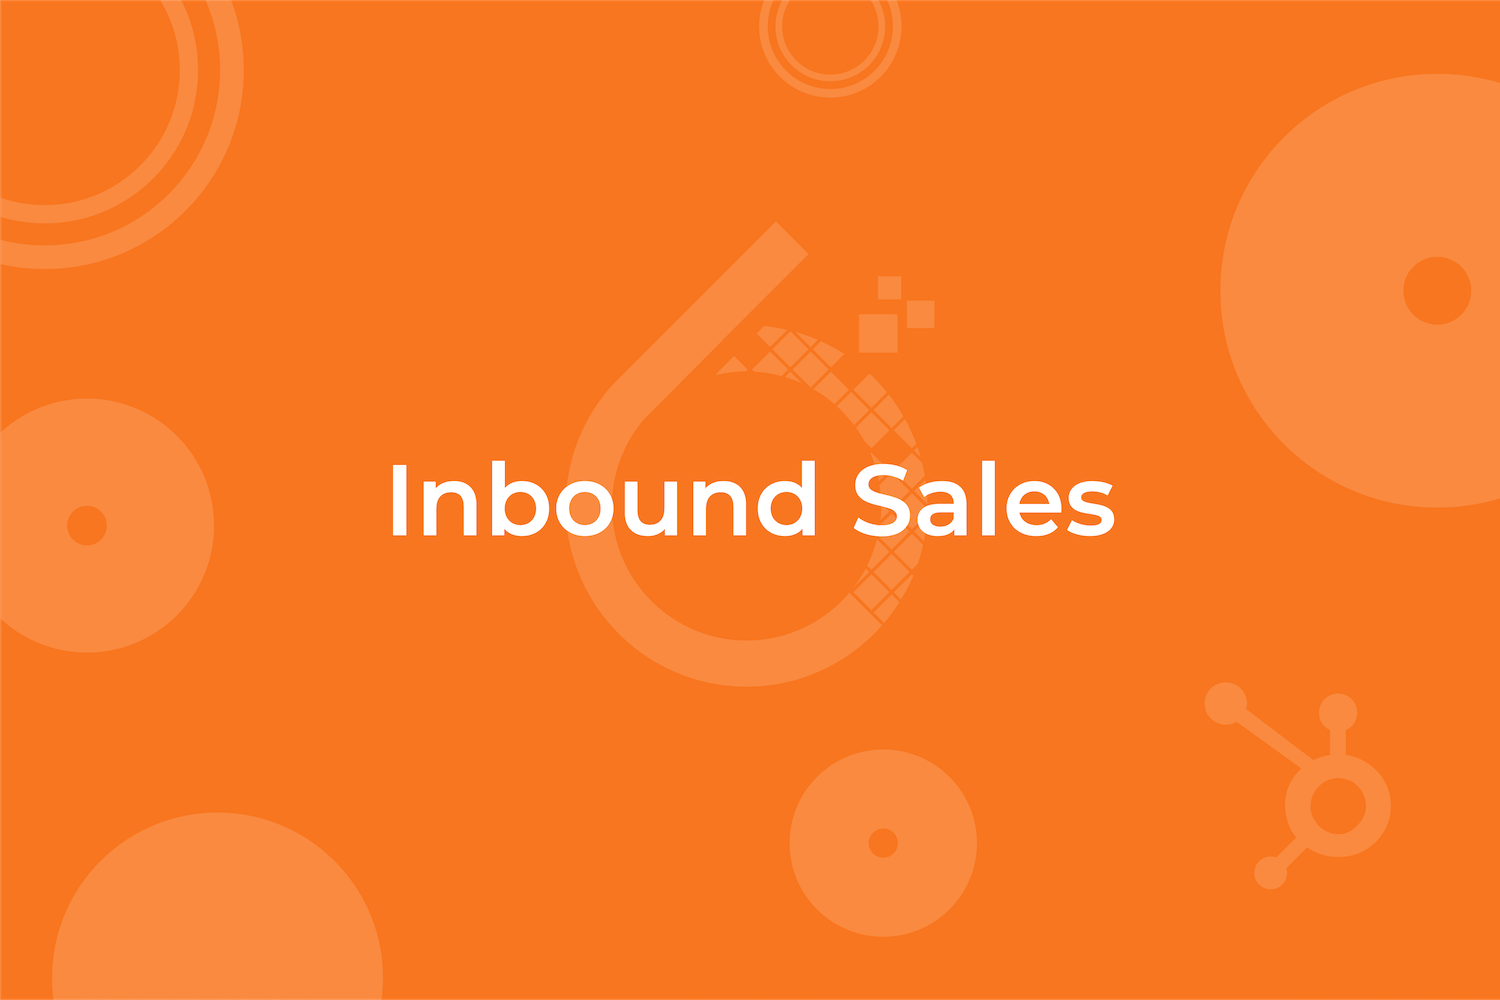 6t30 - Why Go Inbound - Sales